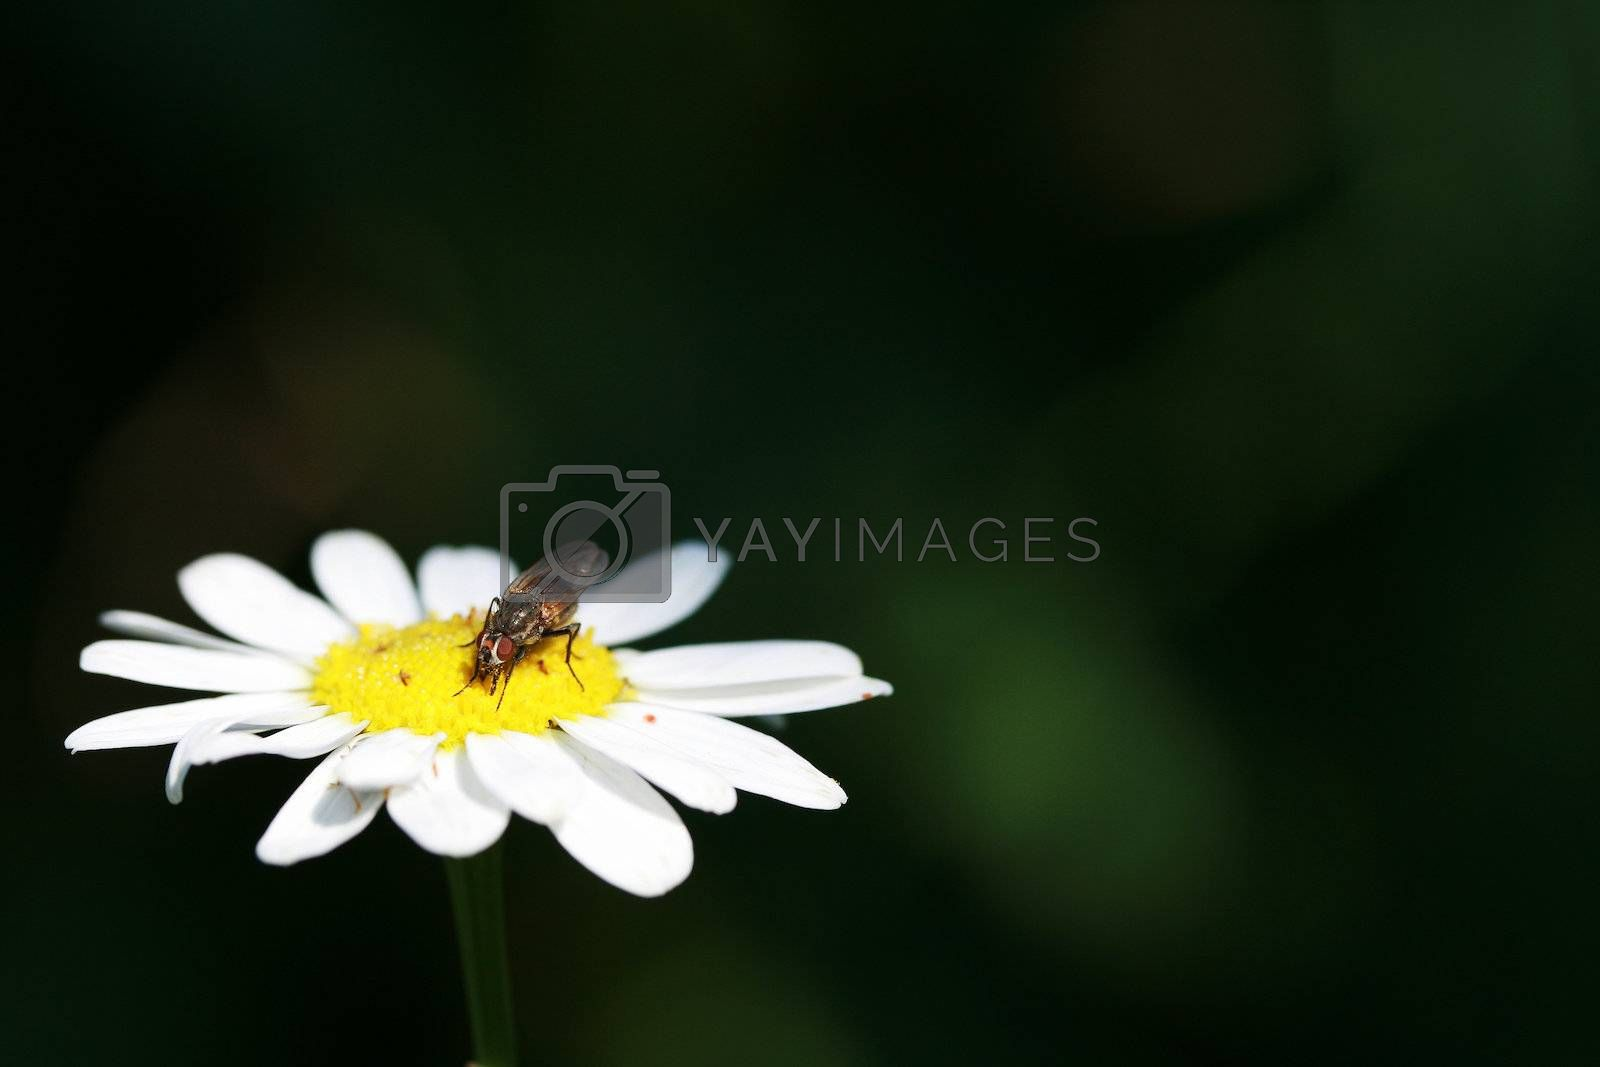 The fly sits on a camomile shined by light